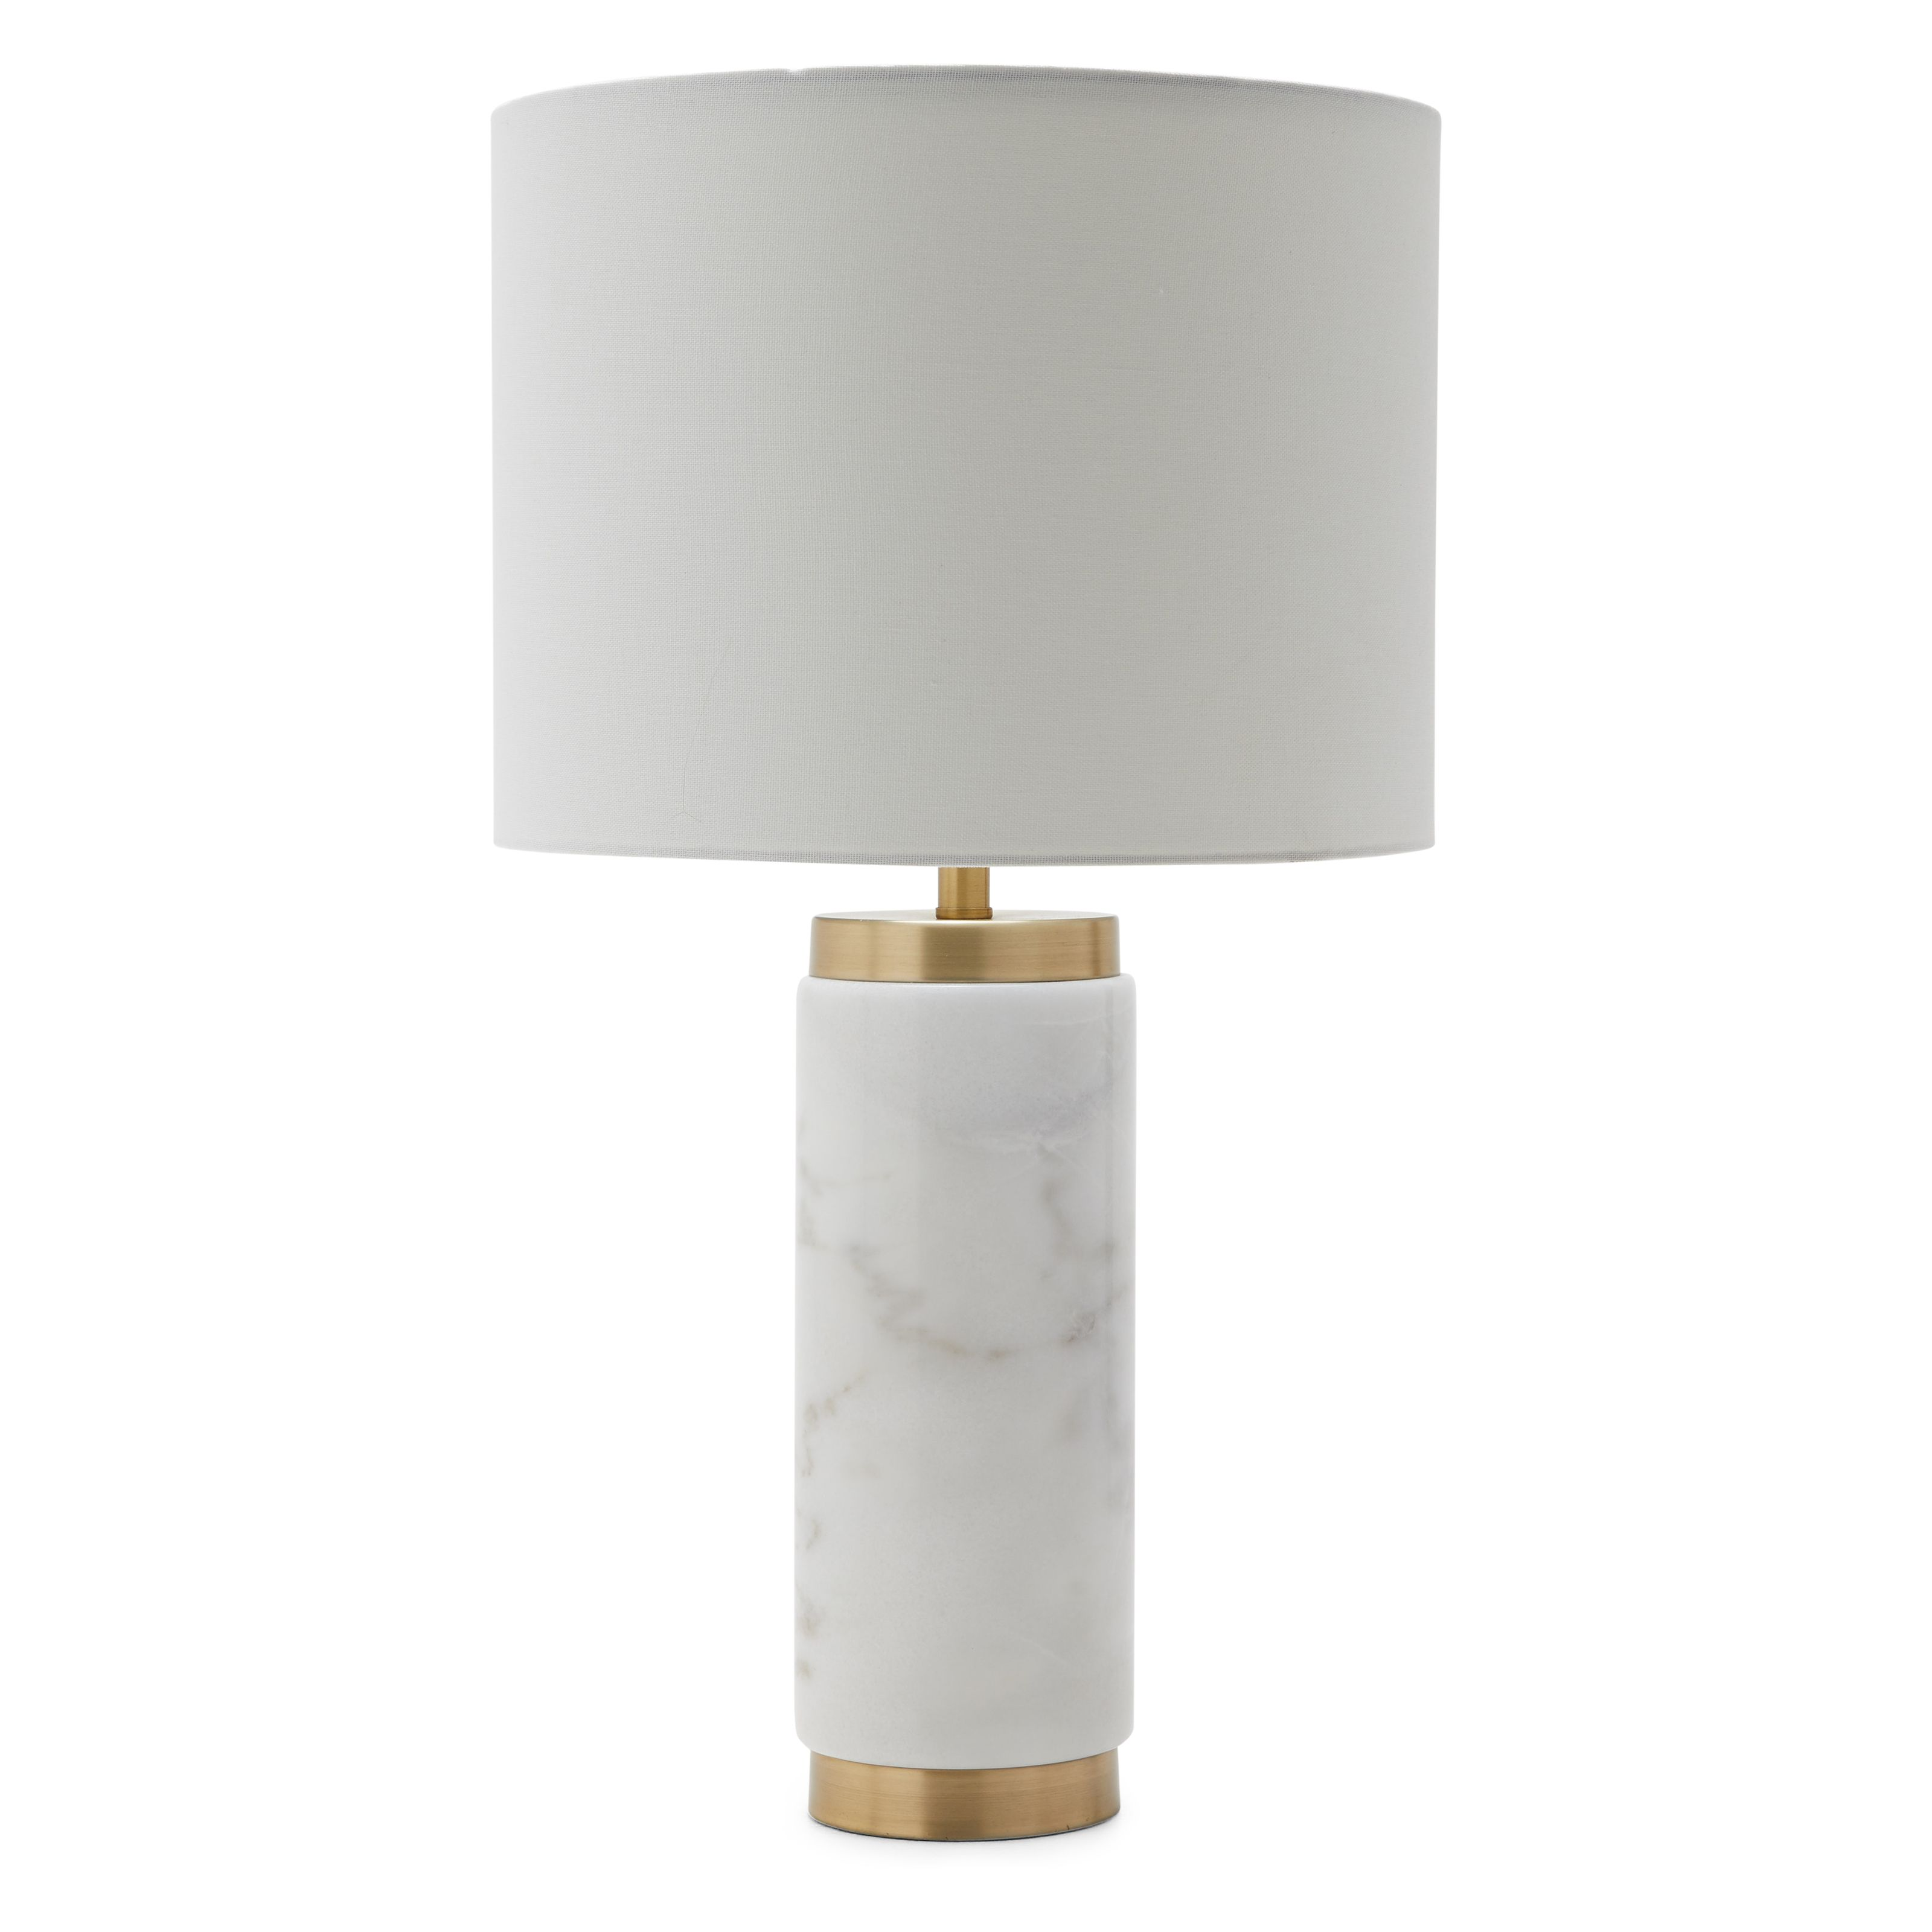 Gallery from The Table With Lamp Walmart Now @house2homegoods.net